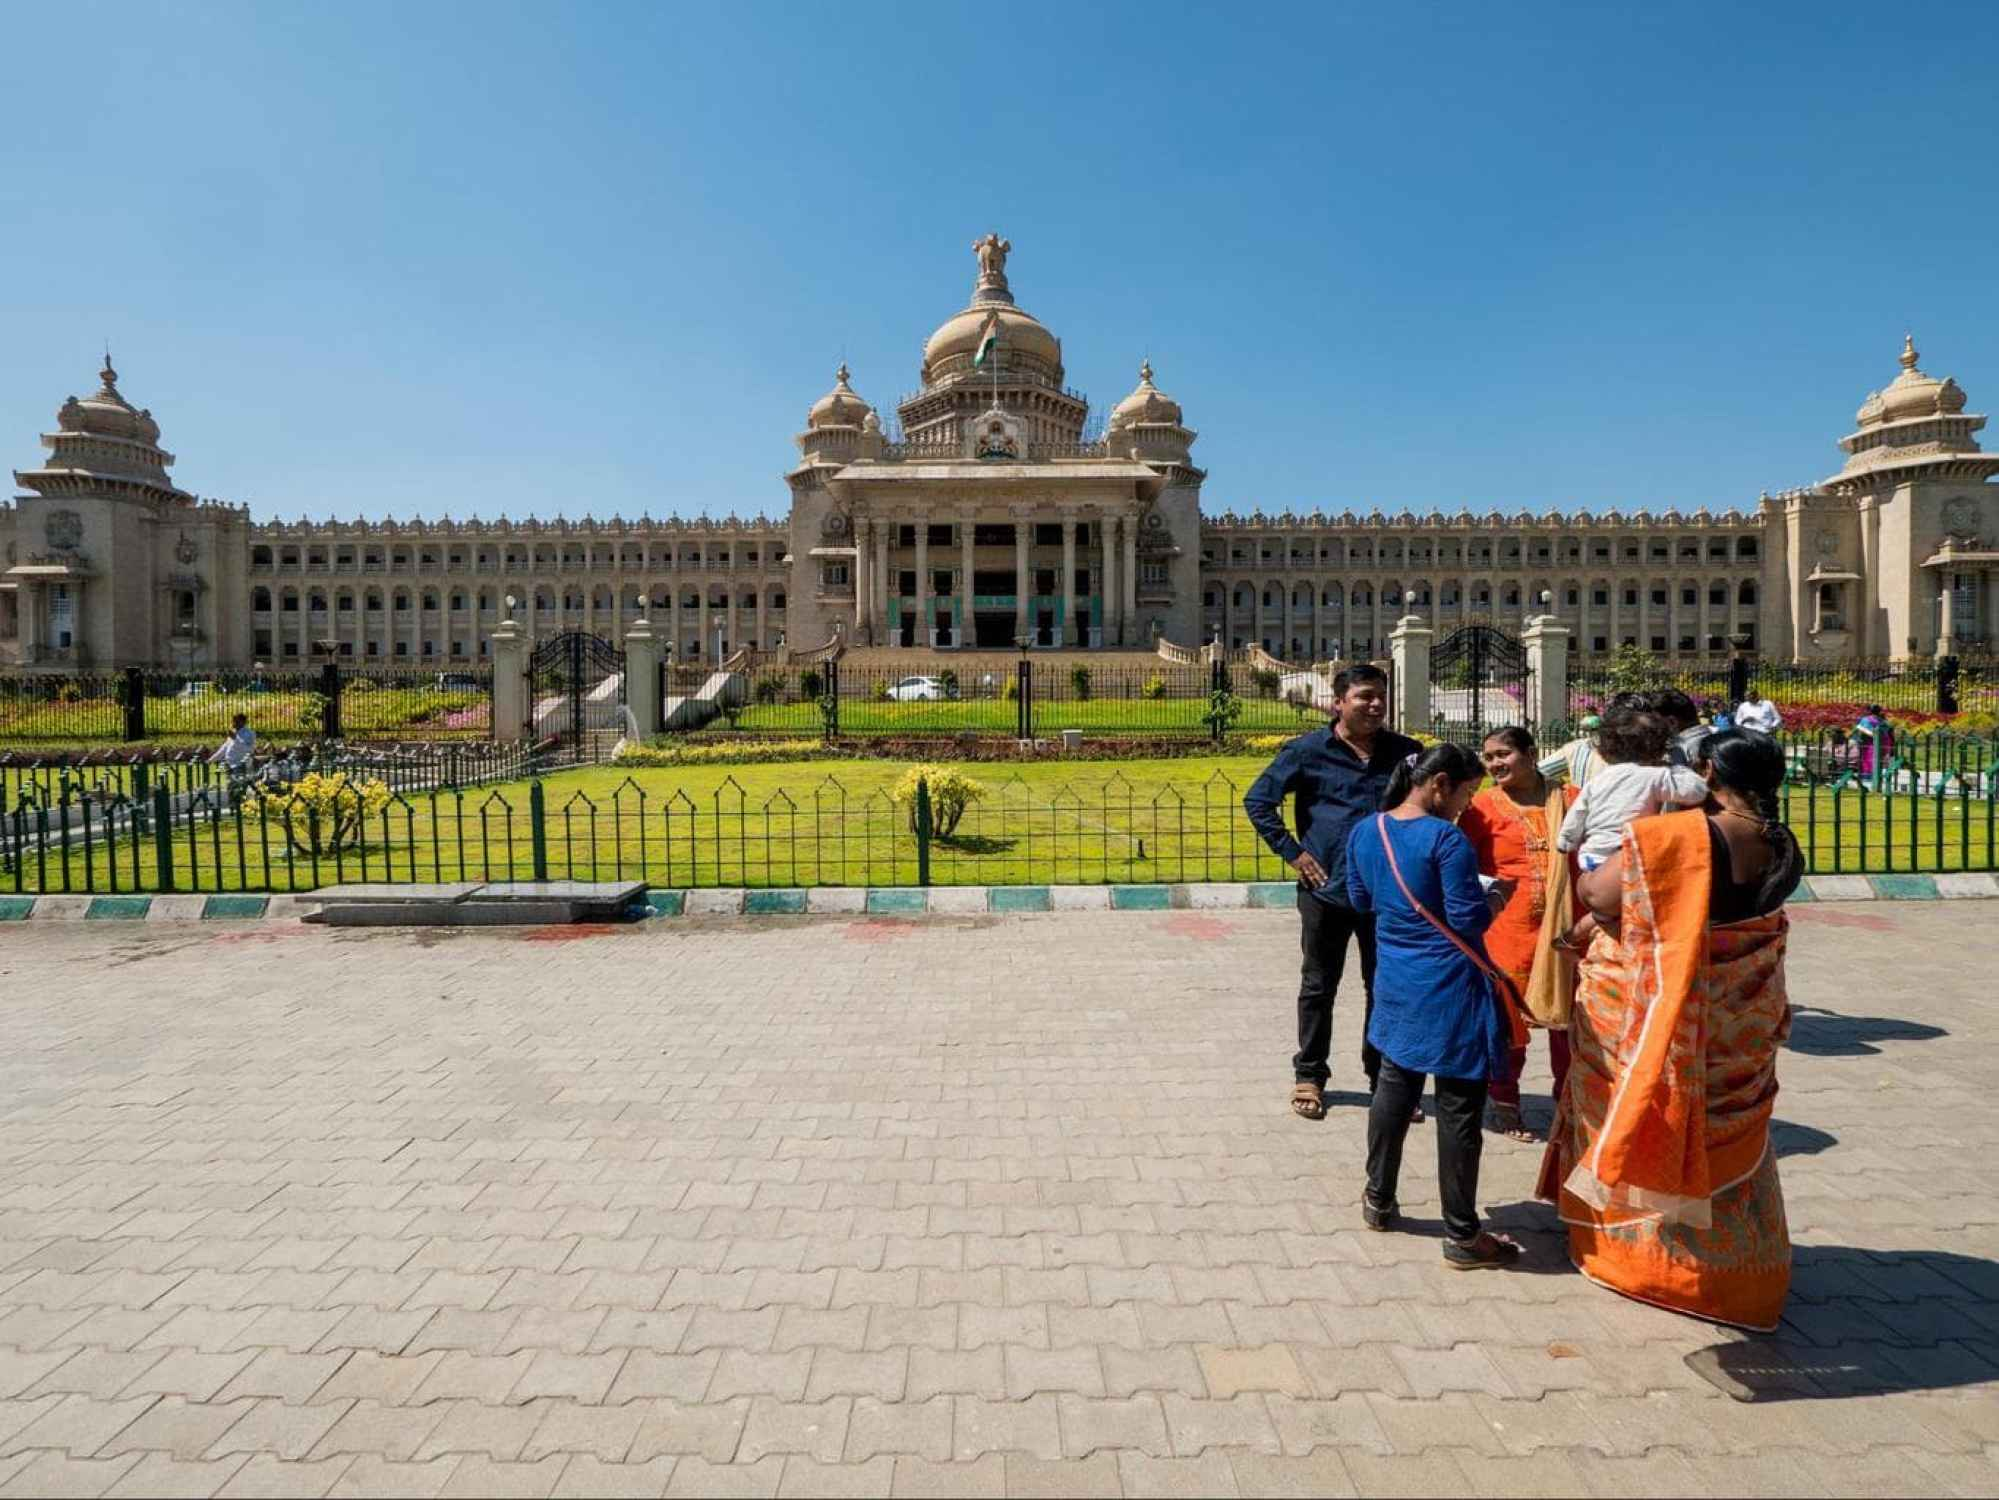 Entrance to Vidhana Soudha in Bangalore